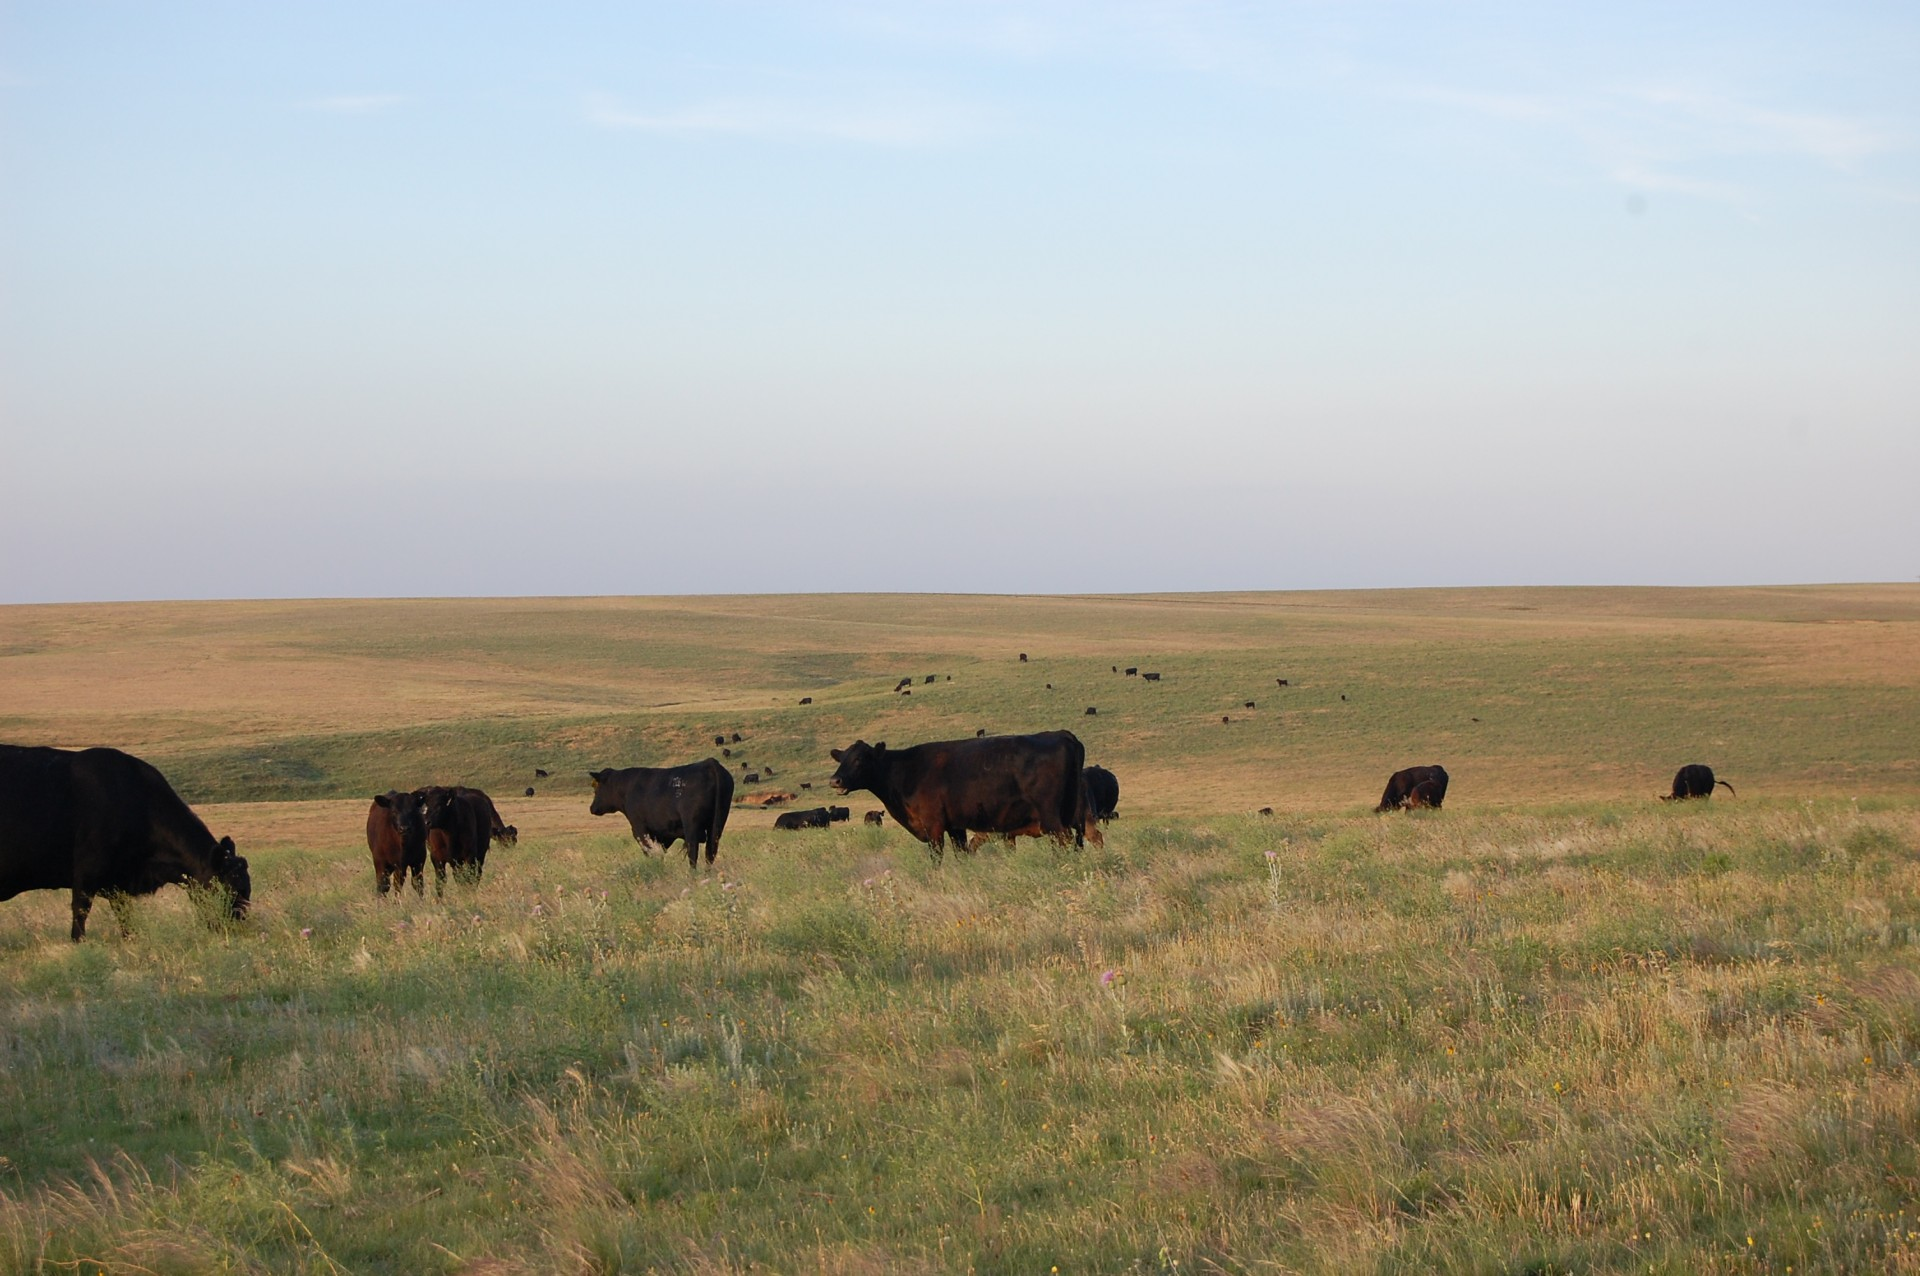 Wanted - Ranch Hand For Large Cattle Ranch - Kansas